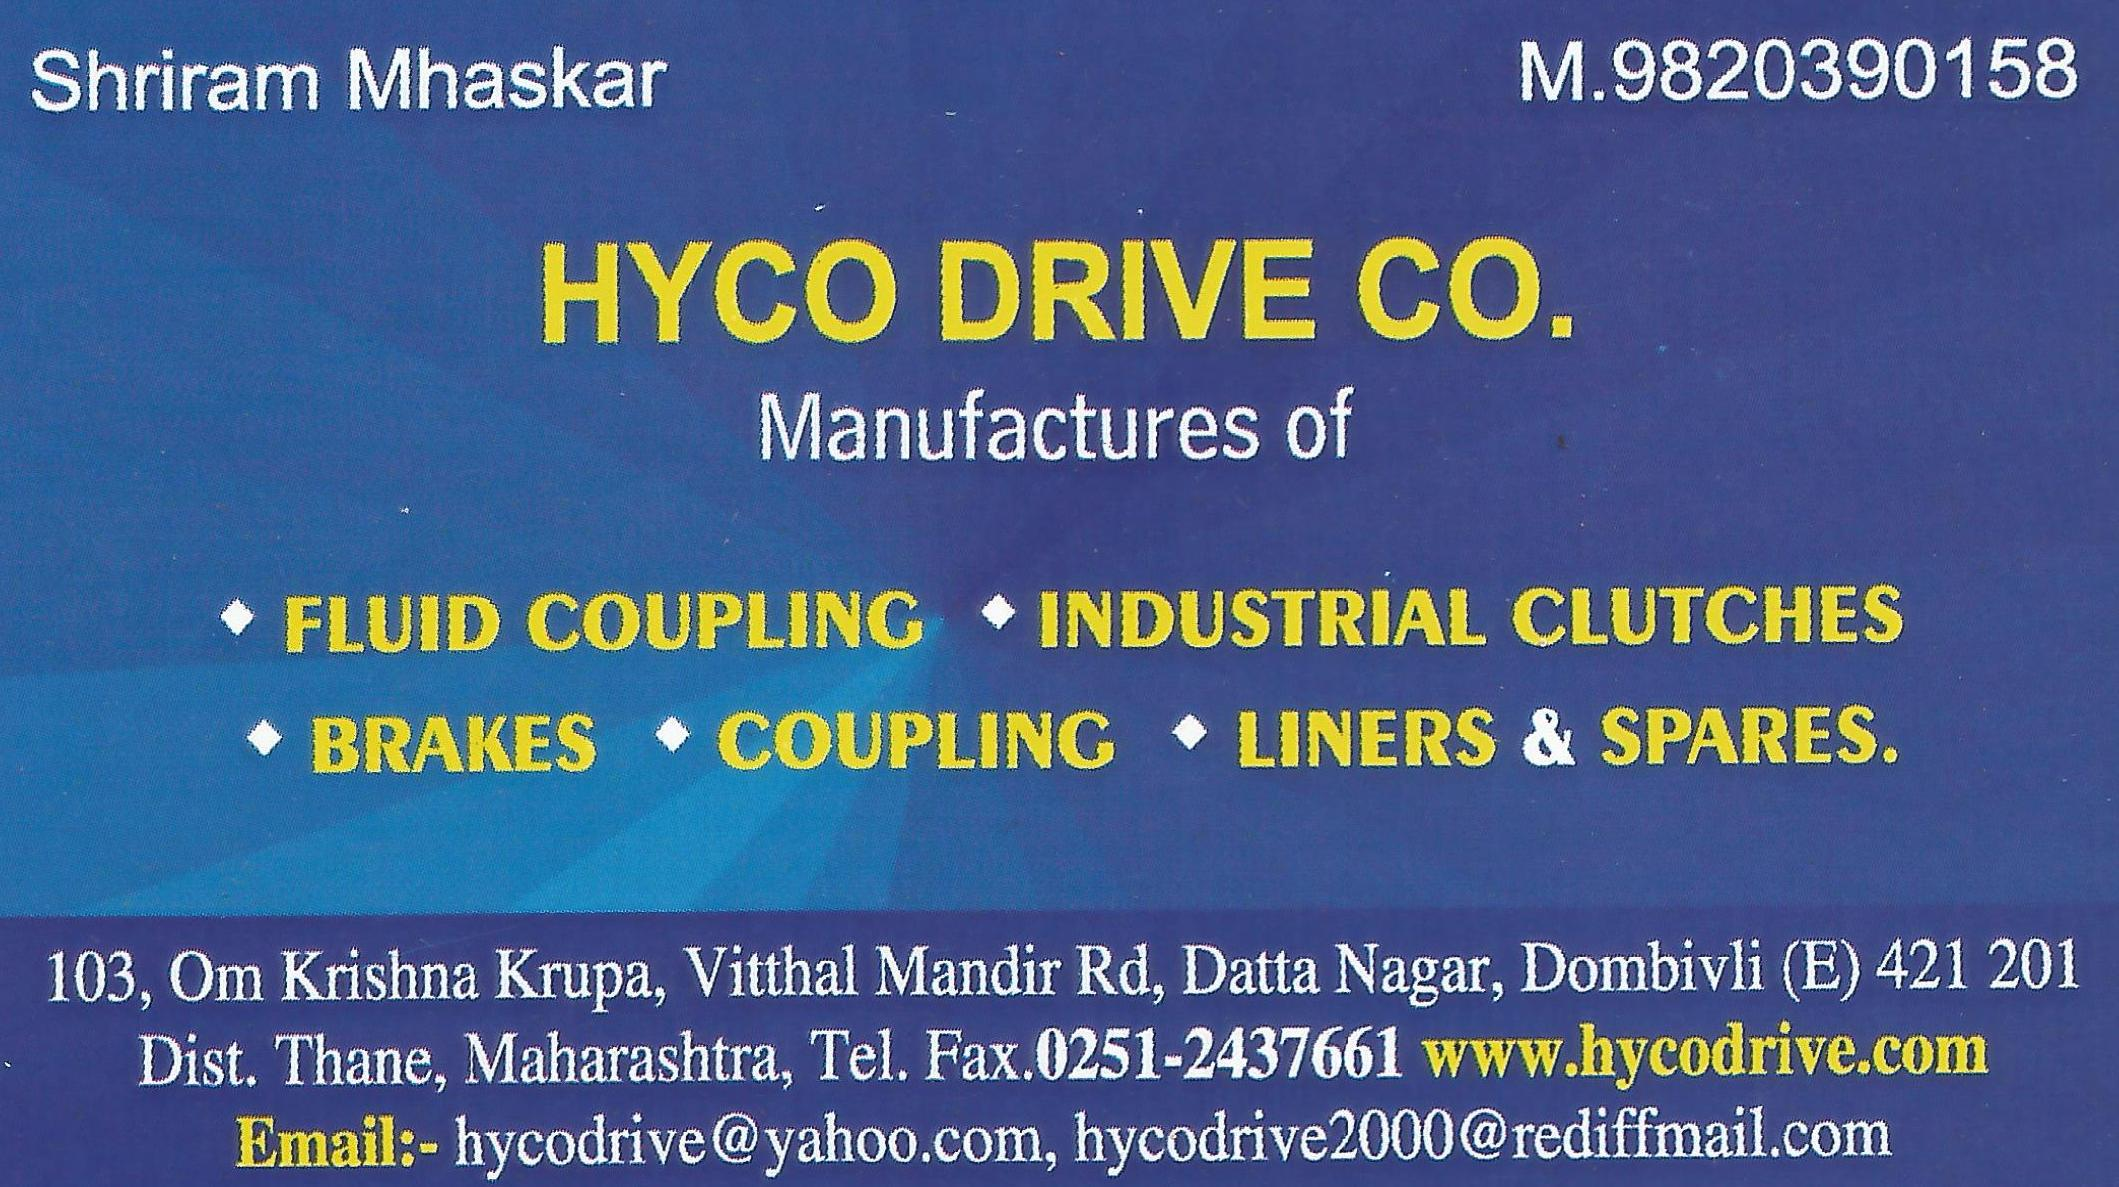 image of Hyco Drive Co.